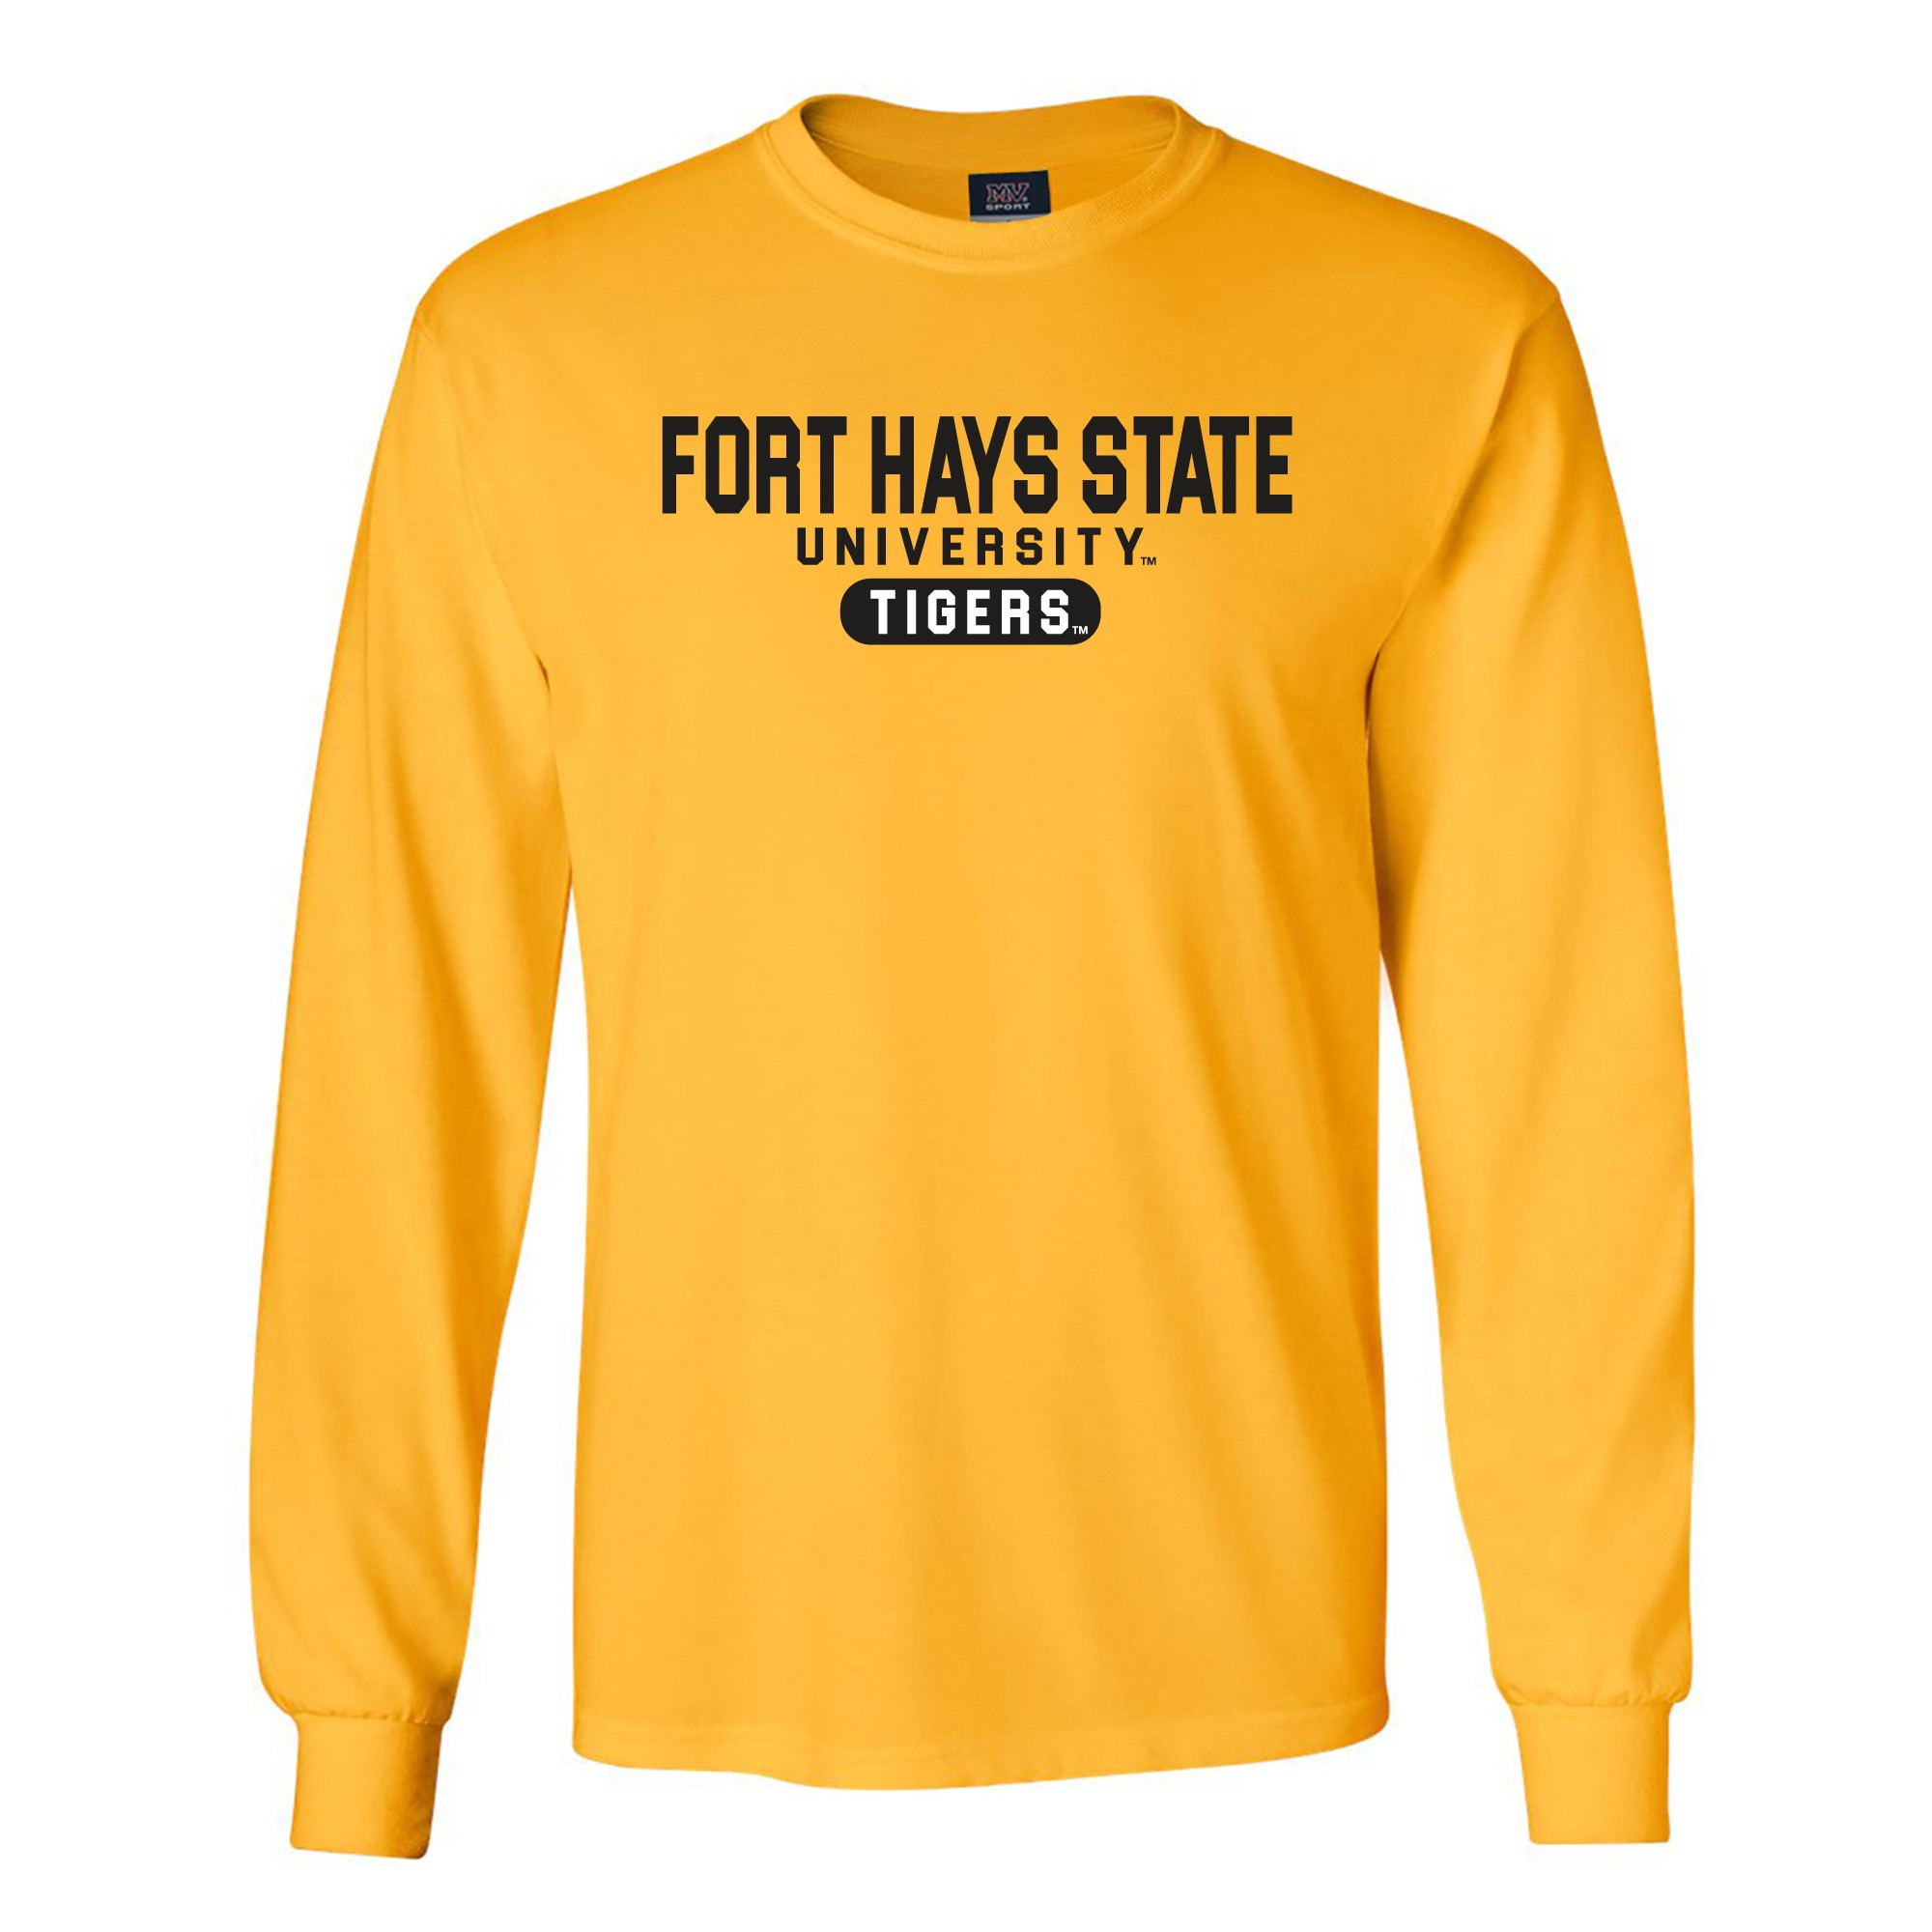 Image for the FHSU Tigers Classic Long Sleeve Tee, Athletic Gold, MV Sport product